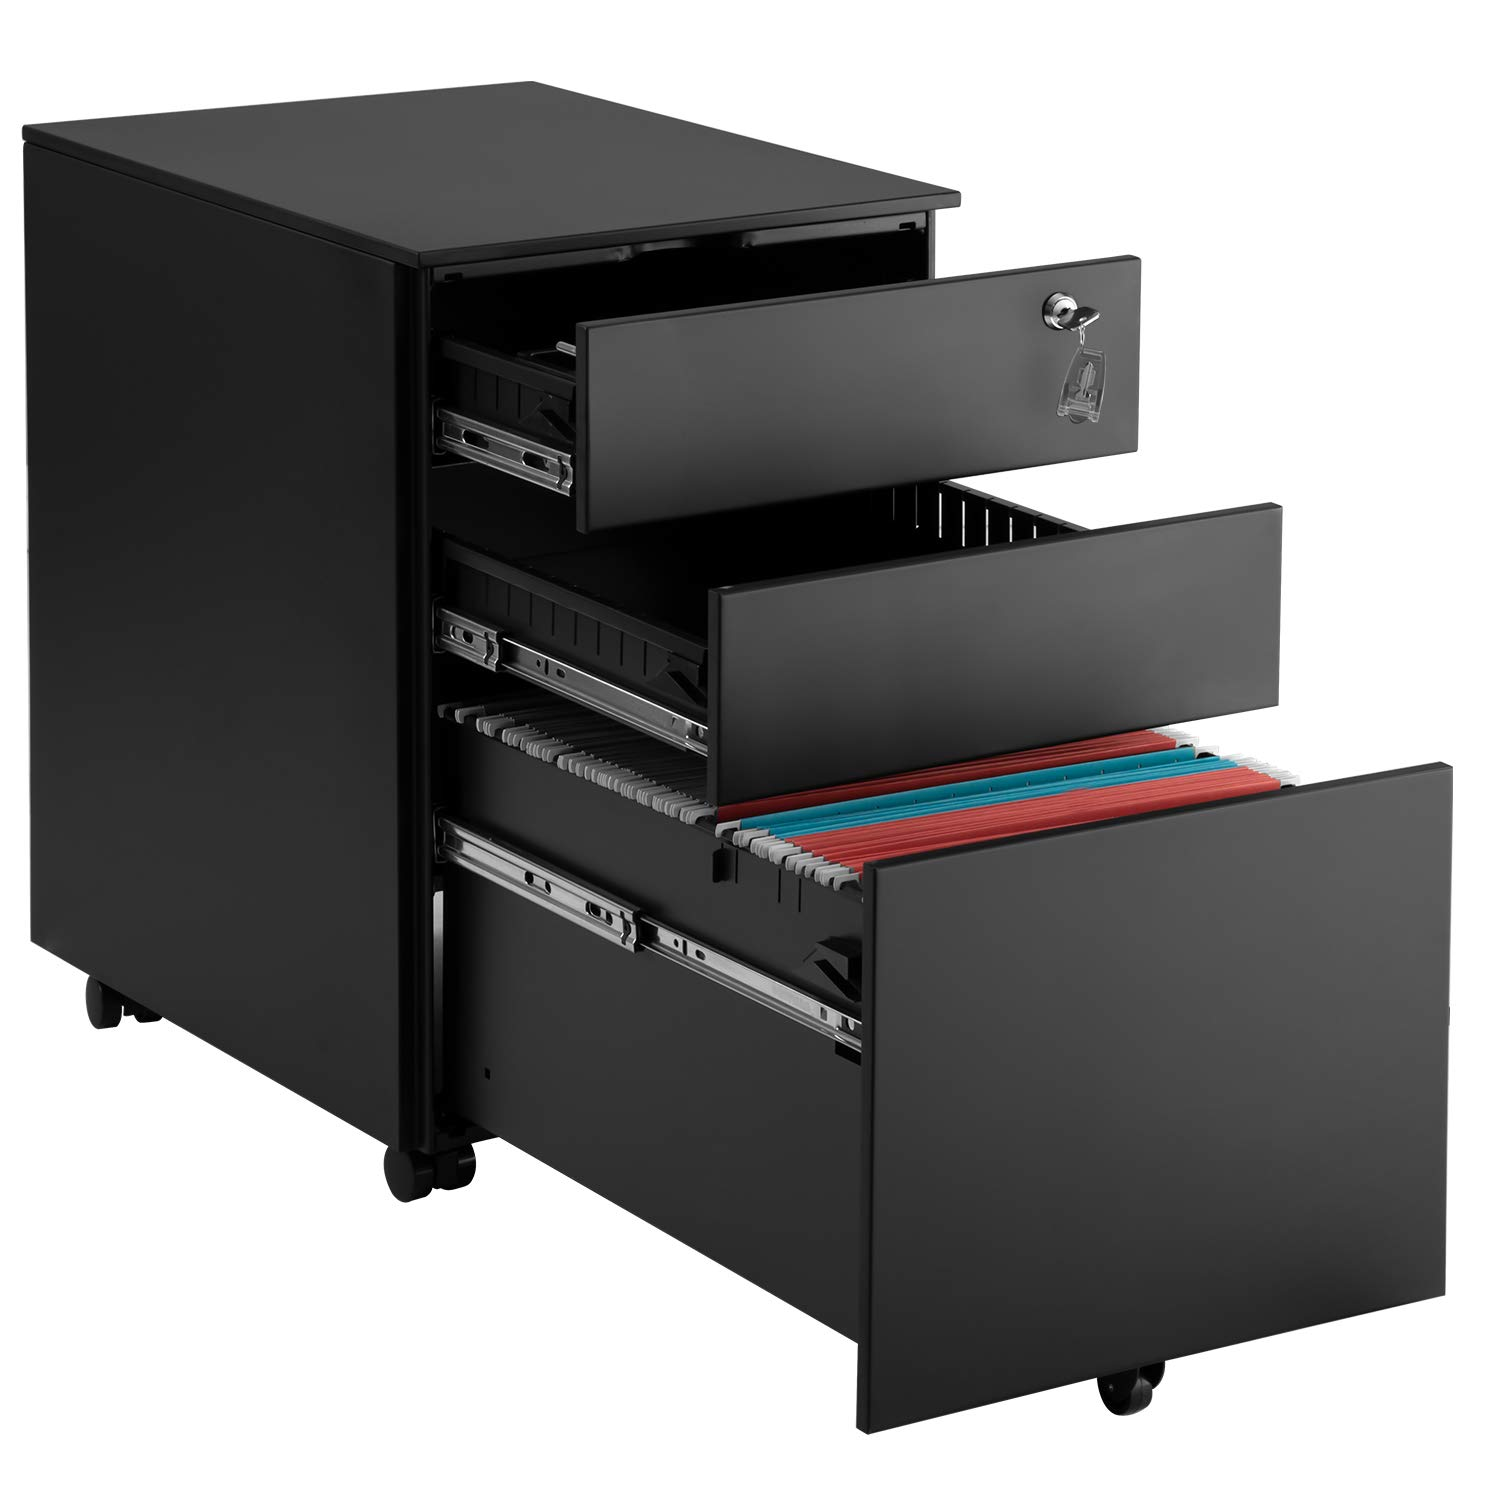 3 Drawer Mobile File Cabinet Black Heavy Duty Metal Cabinet with Drawers Lockable Office Filing Cabinet Under Desk Fully Assembled Except for 5 Casters... by P PURLOVE